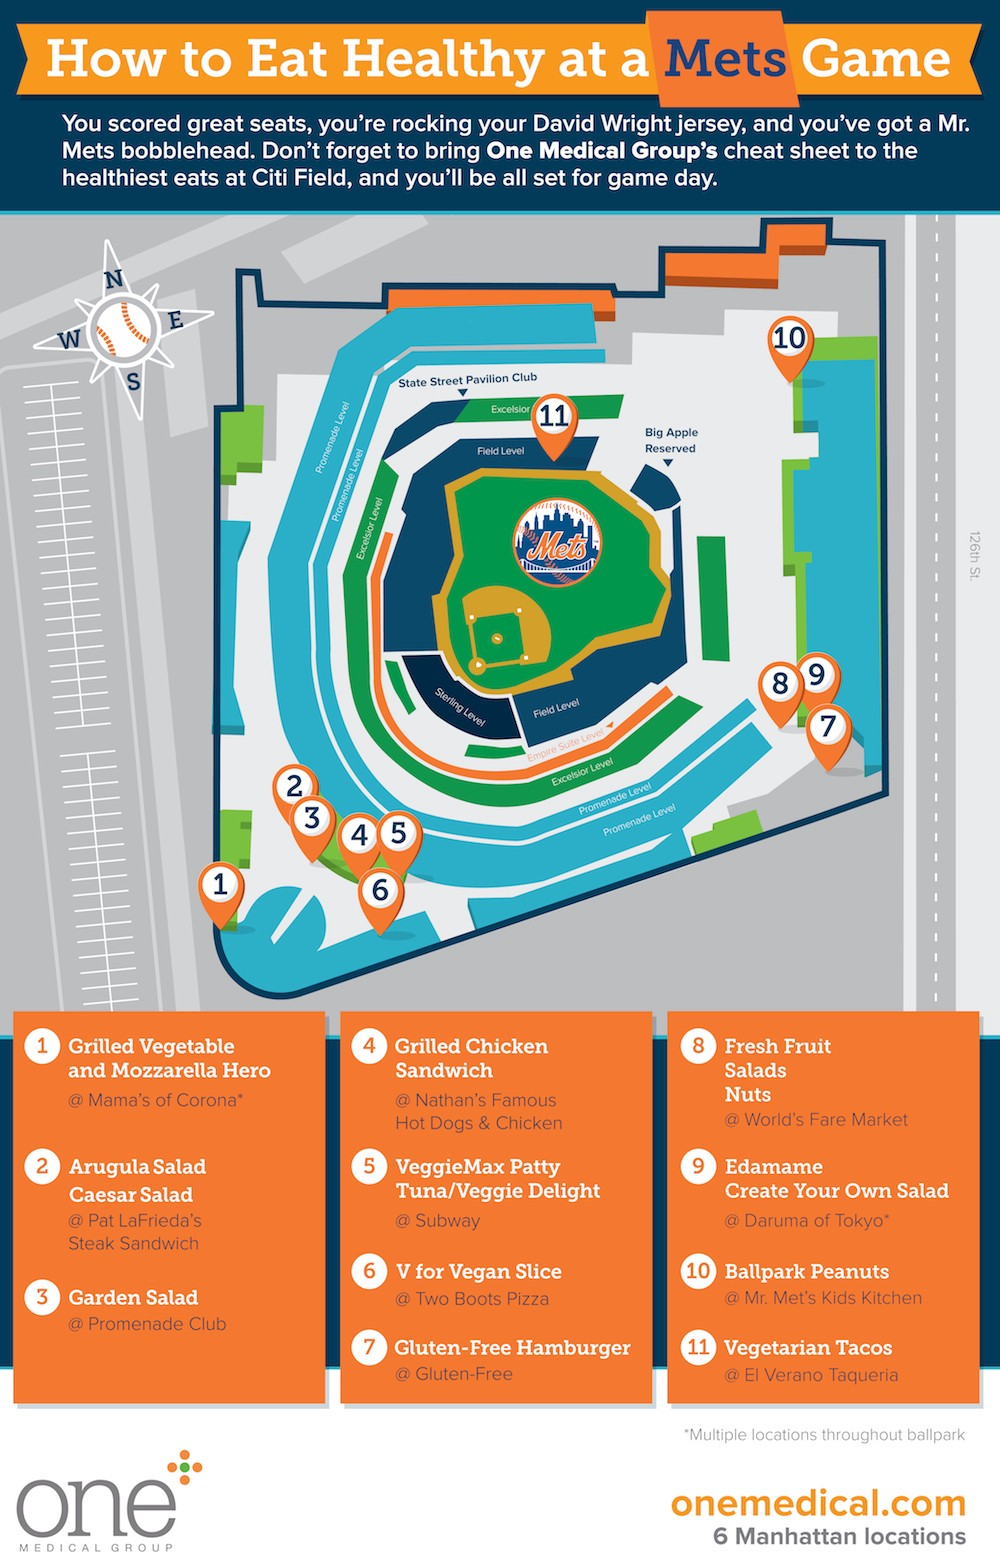 How to eat healthy at Citi Field – Mets Cetera